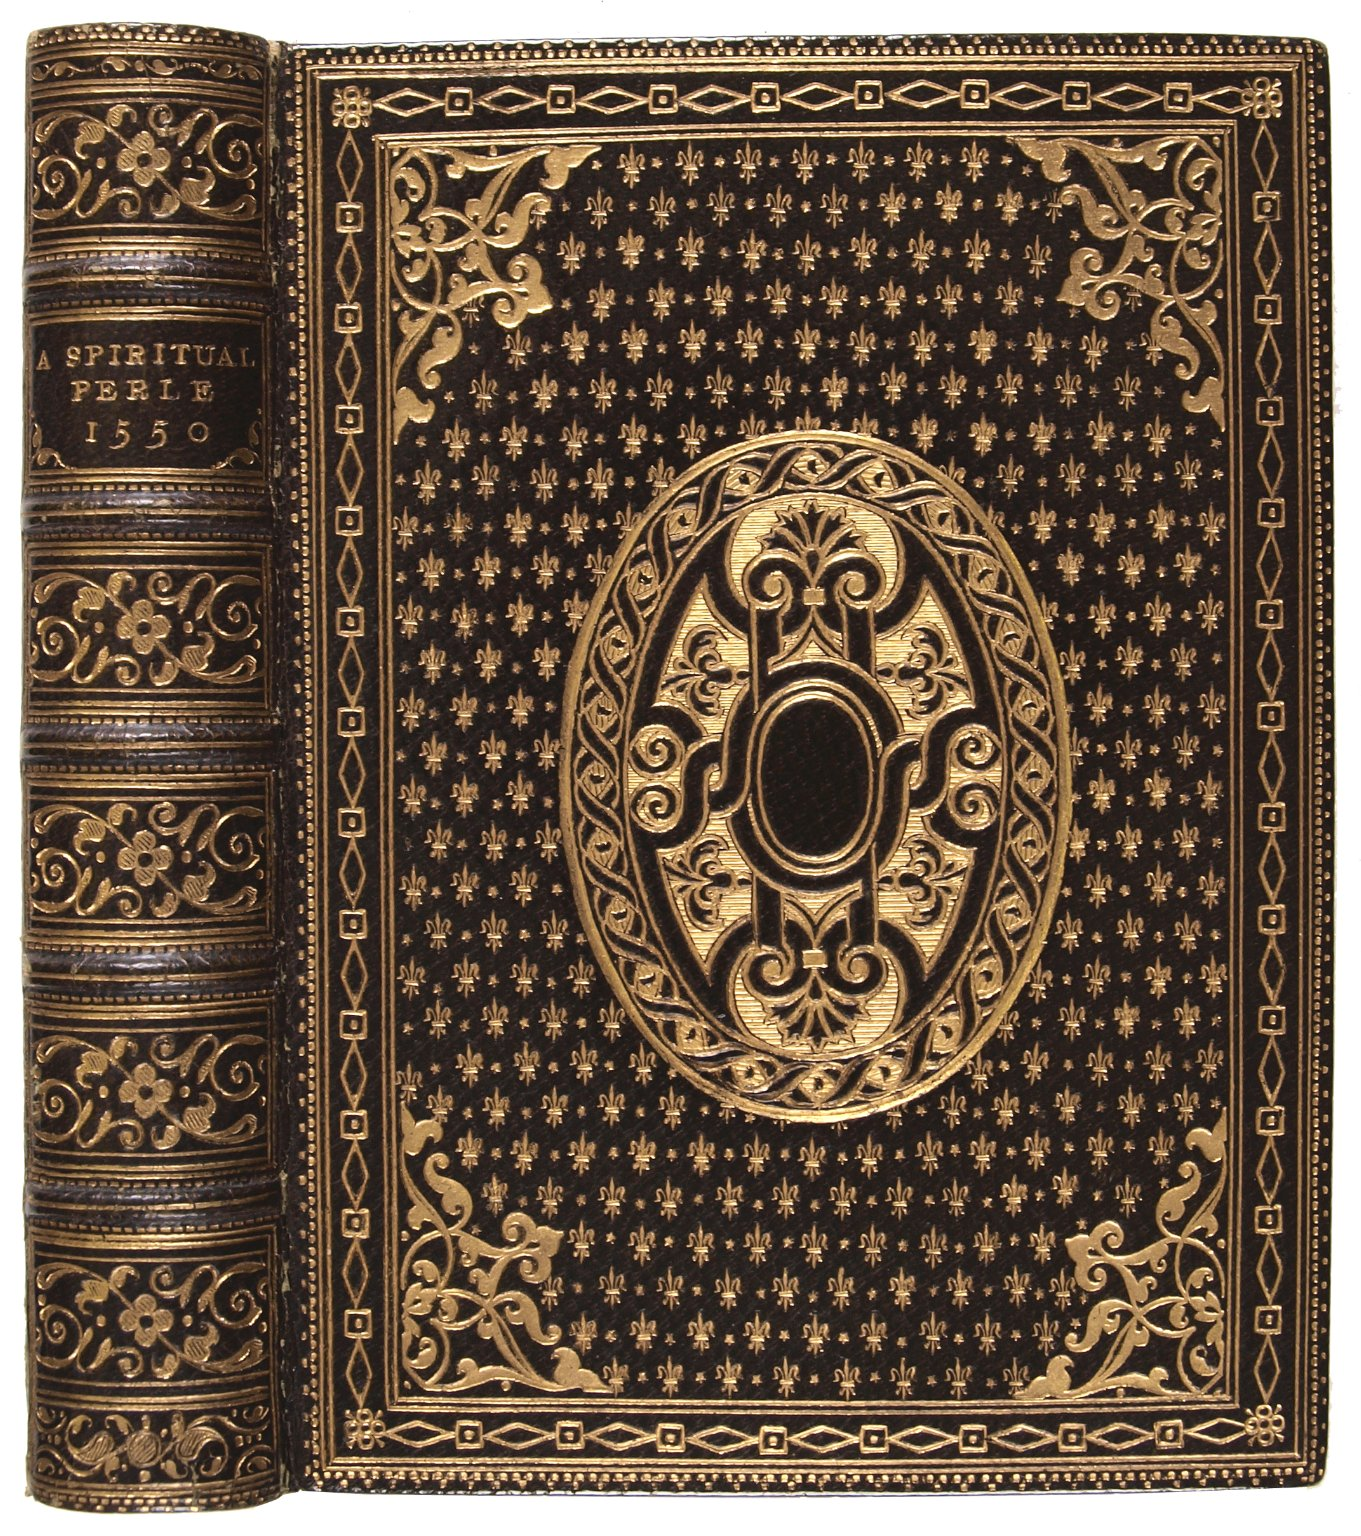 Front cover and spine, STC 25256  - LUNA: Folger Bindings